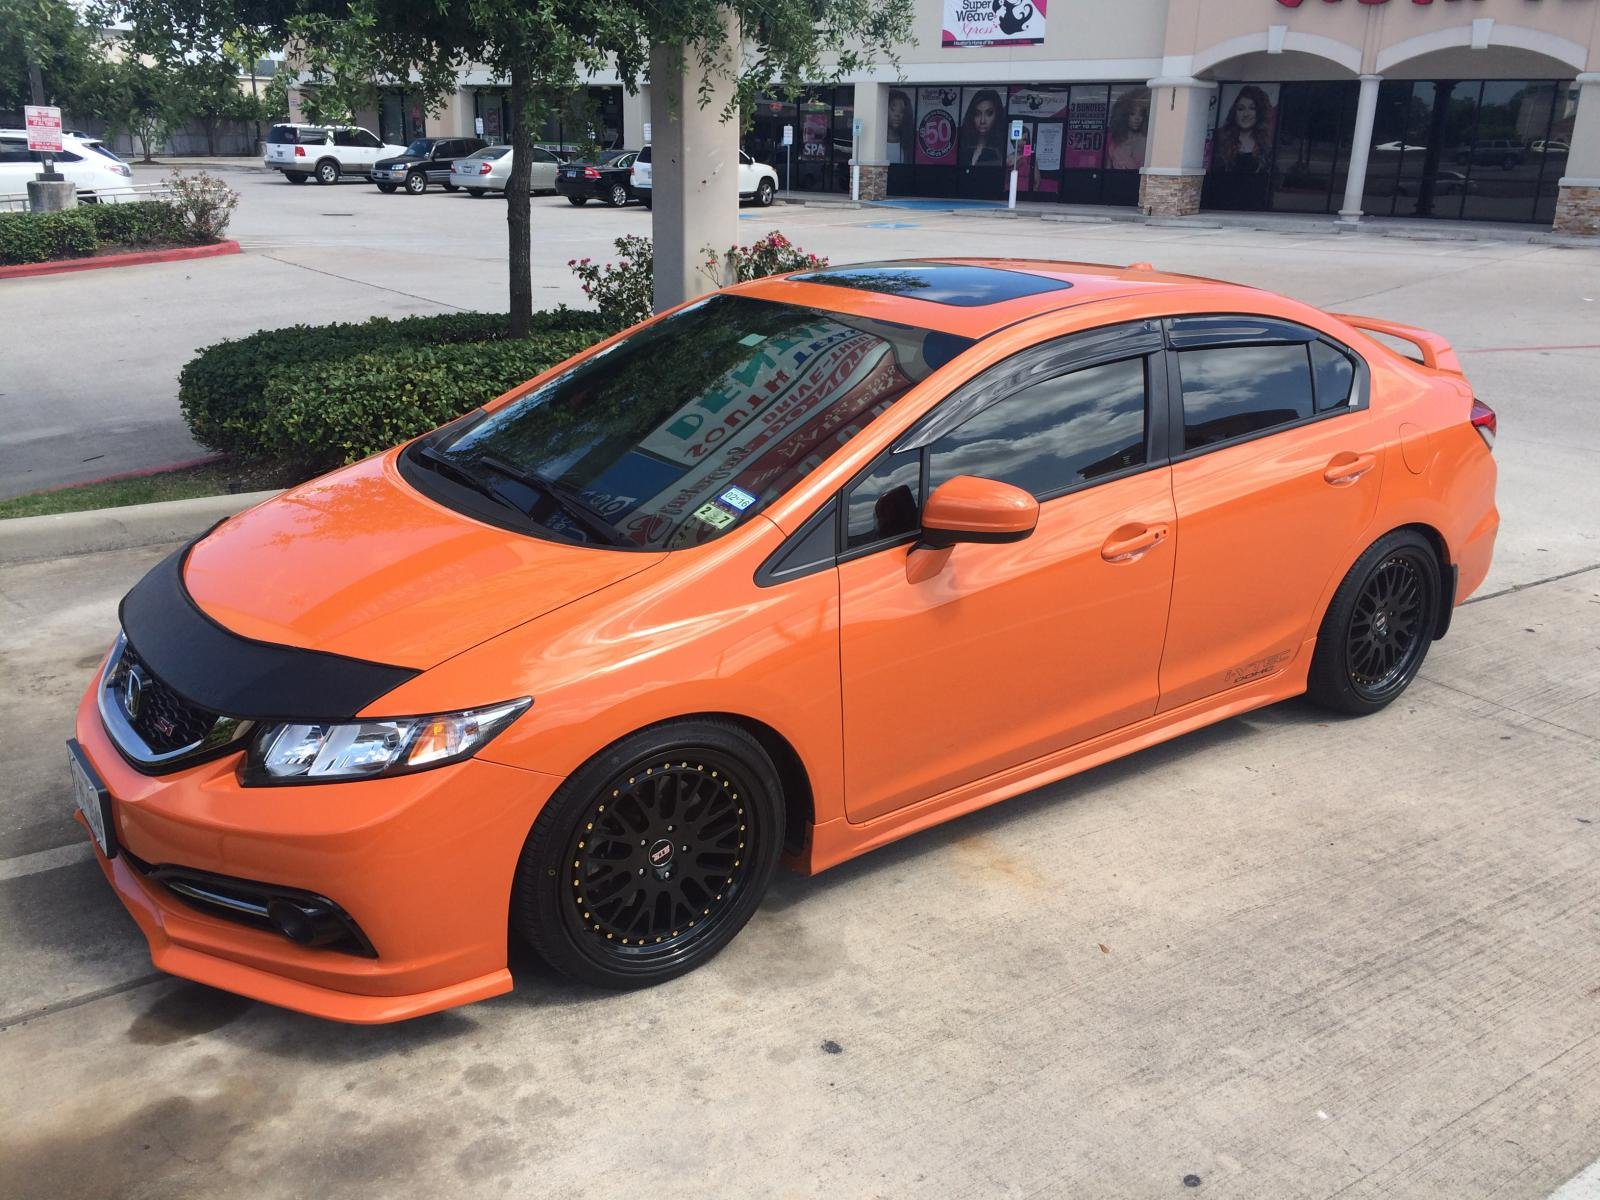 2015 Honda Civic Si Cici · **The Official Orange Fire Pearl  Thread** Img_2547